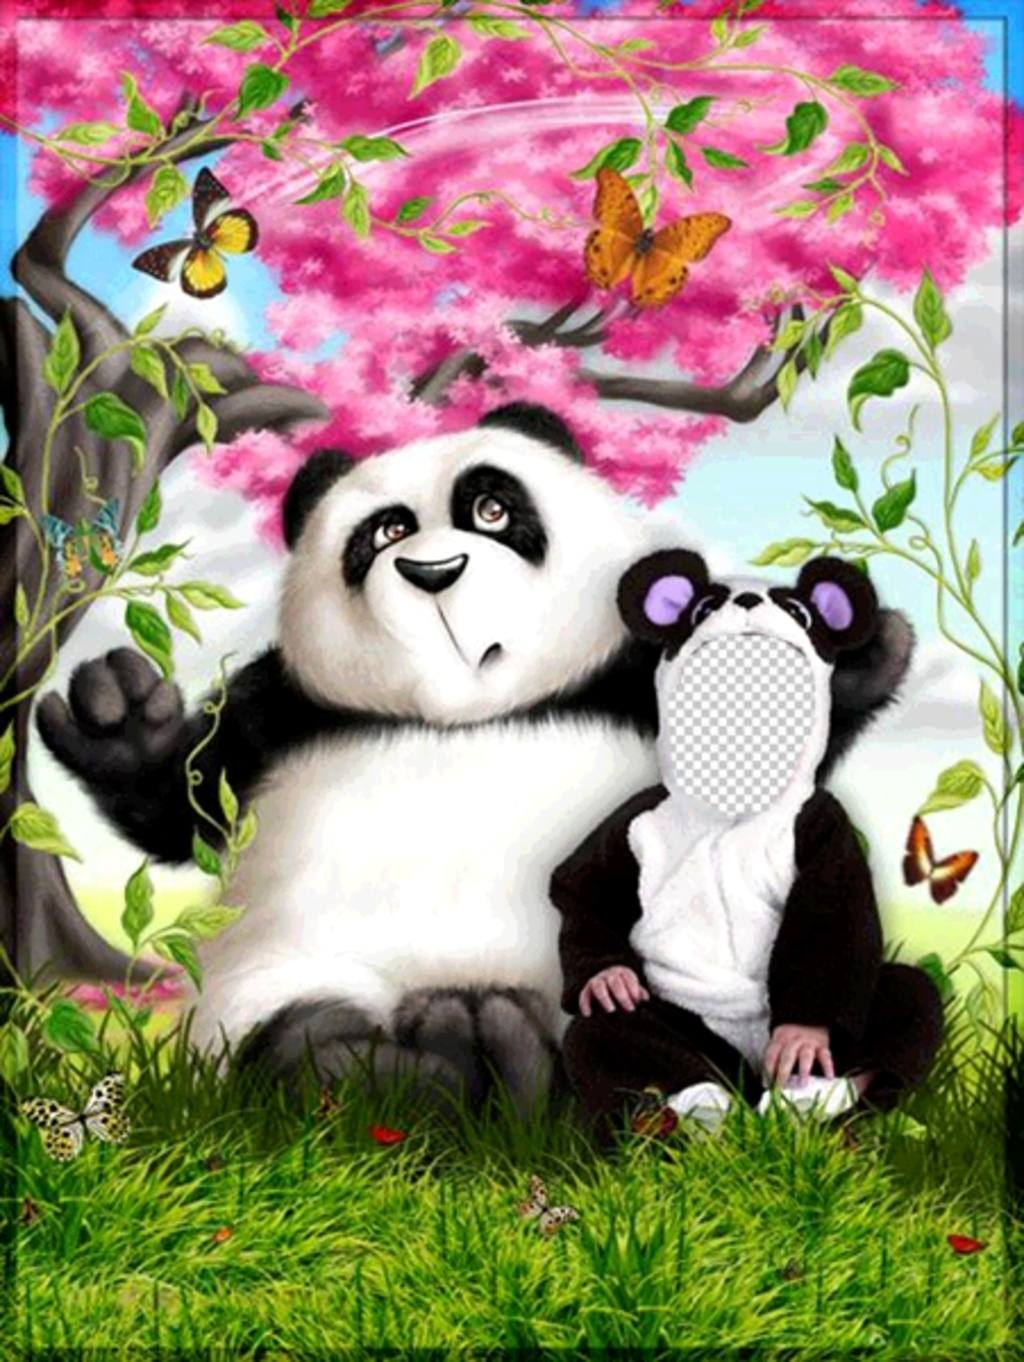 Panda costume that you can edit online and free panda costume that you can edit online and free solutioingenieria Choice Image